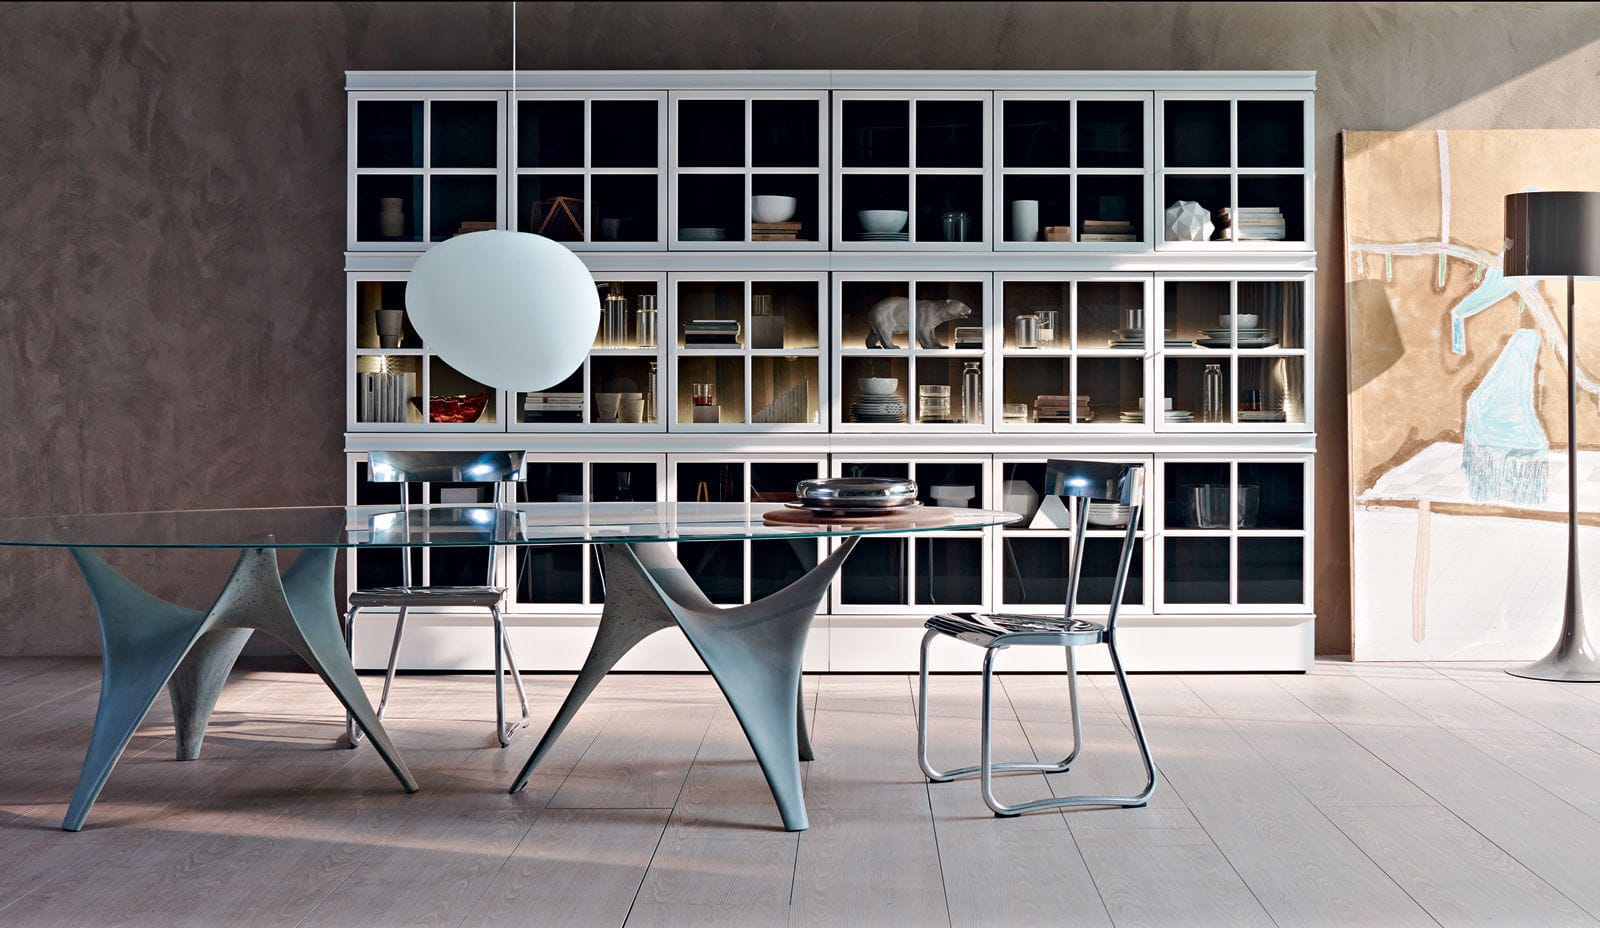 Muebles Molteni - Contemporary Dining Table Glass Cement Round Arc By Foster [mjhdah]https://i.pinimg.com/originals/ee/0f/f9/ee0ff98061e6e8056309fdd8ae124c97.jpg